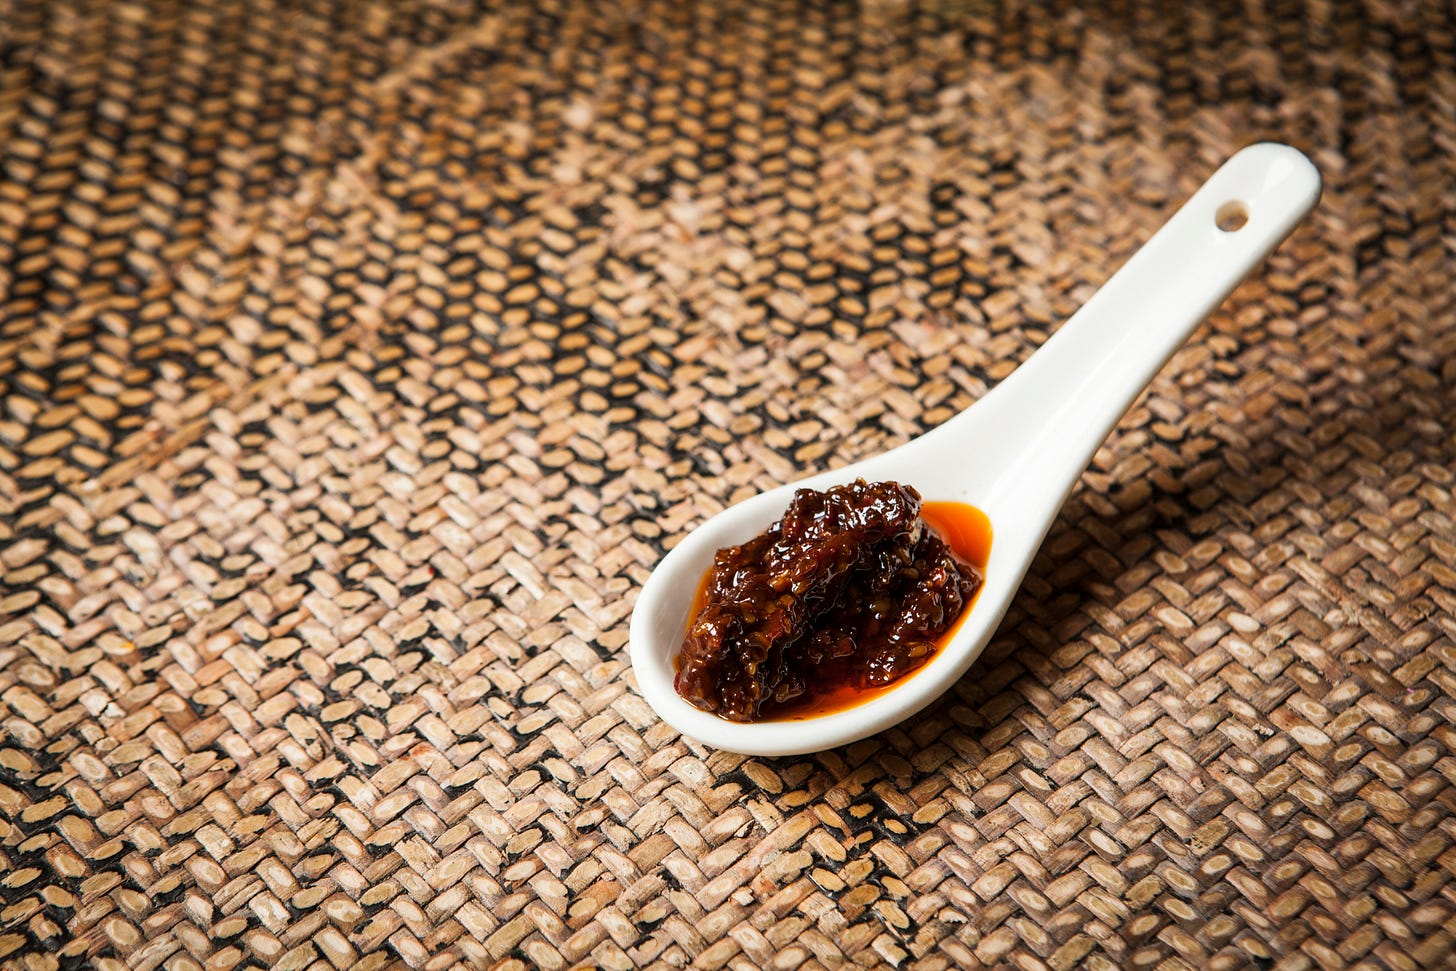 A white ceramic spoon rests on a rattan table mat. In the bowl of the spoon is a deep-reddish brown relish.